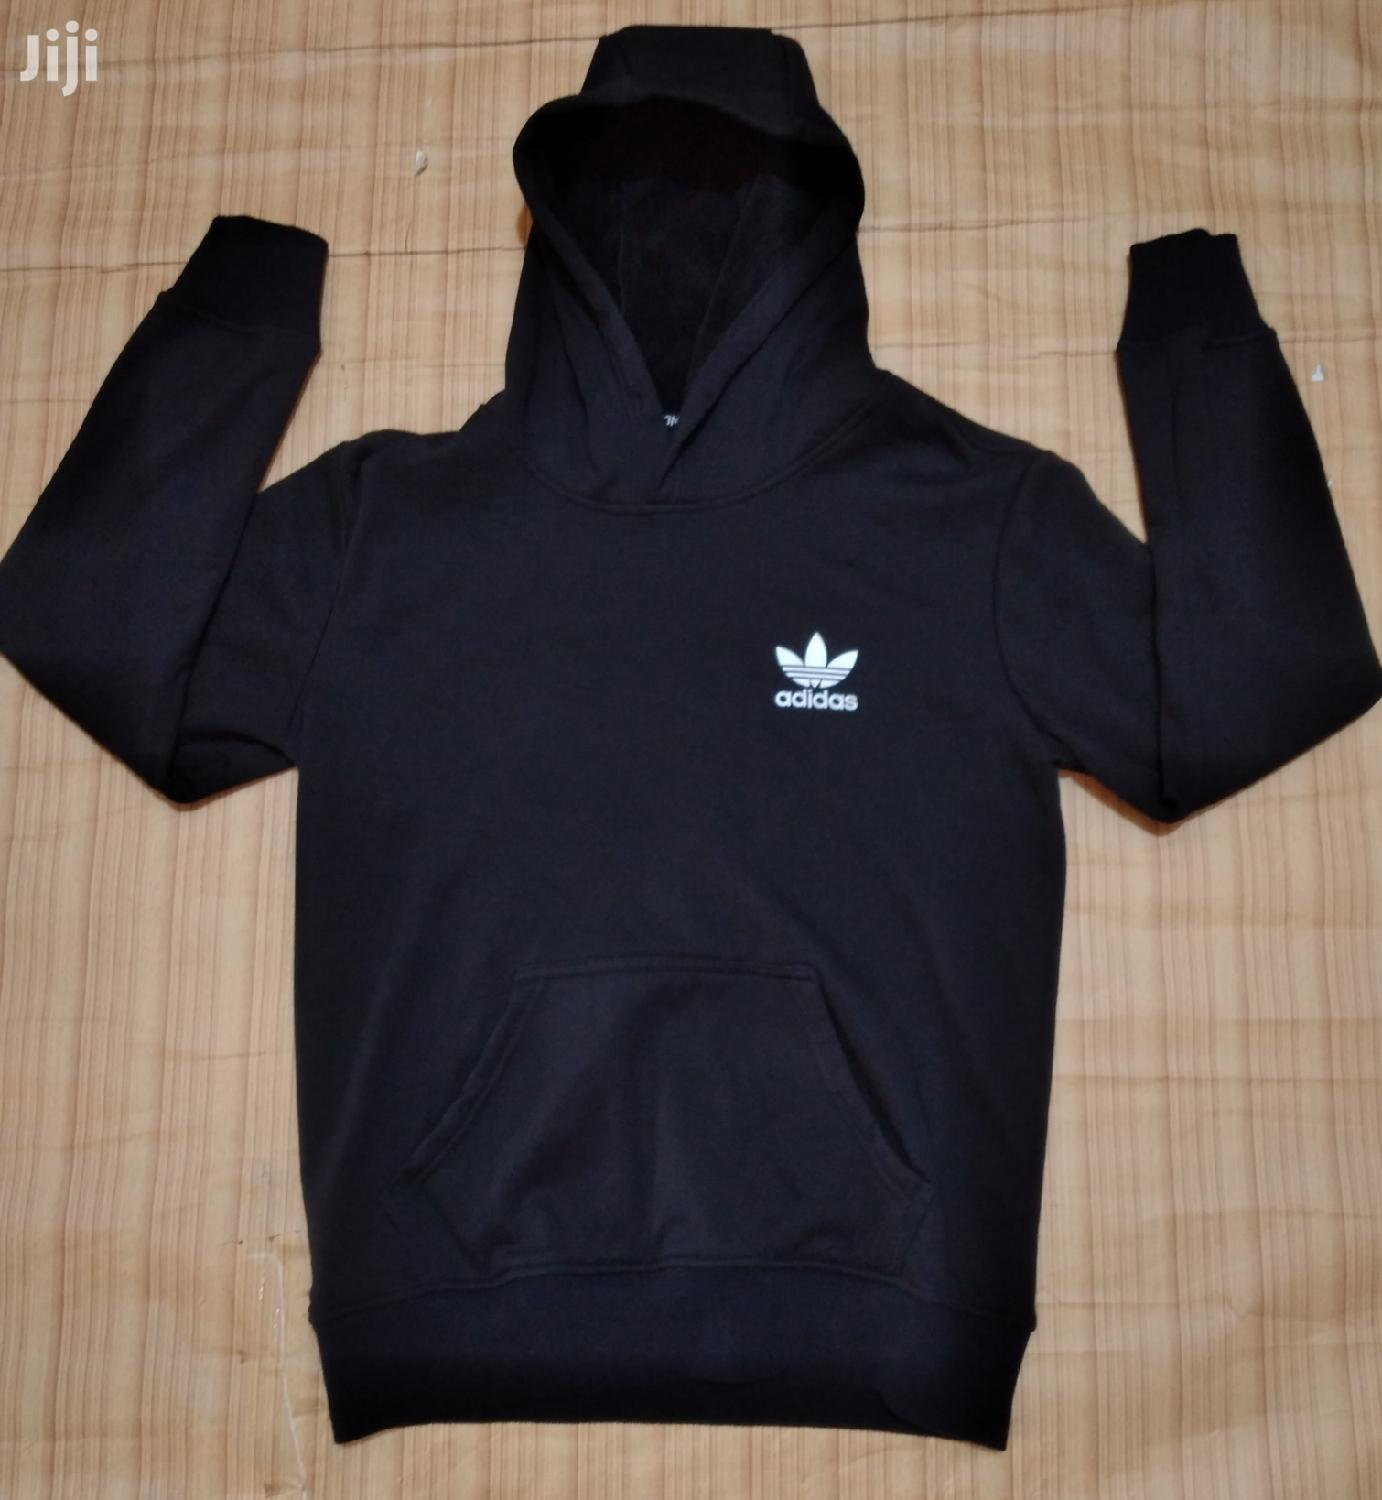 Under Amour Hoodies